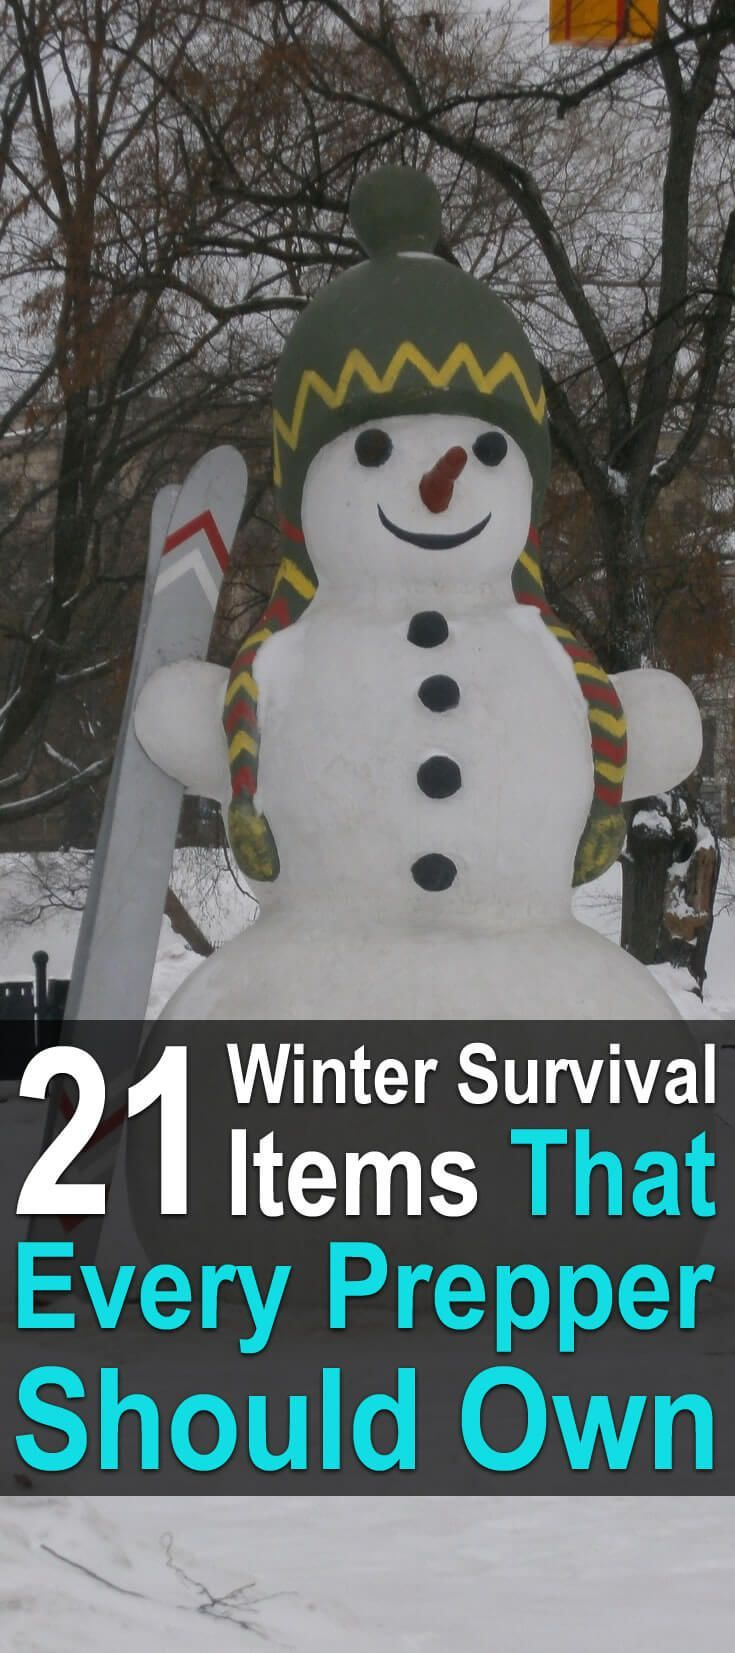 21 Winter Survival Items That Every Prepper Should Own. Here is a list of things you should add to your emergency supply for winter. #Urbansurvivalsite #Wintersurvival #Preppingforwinter